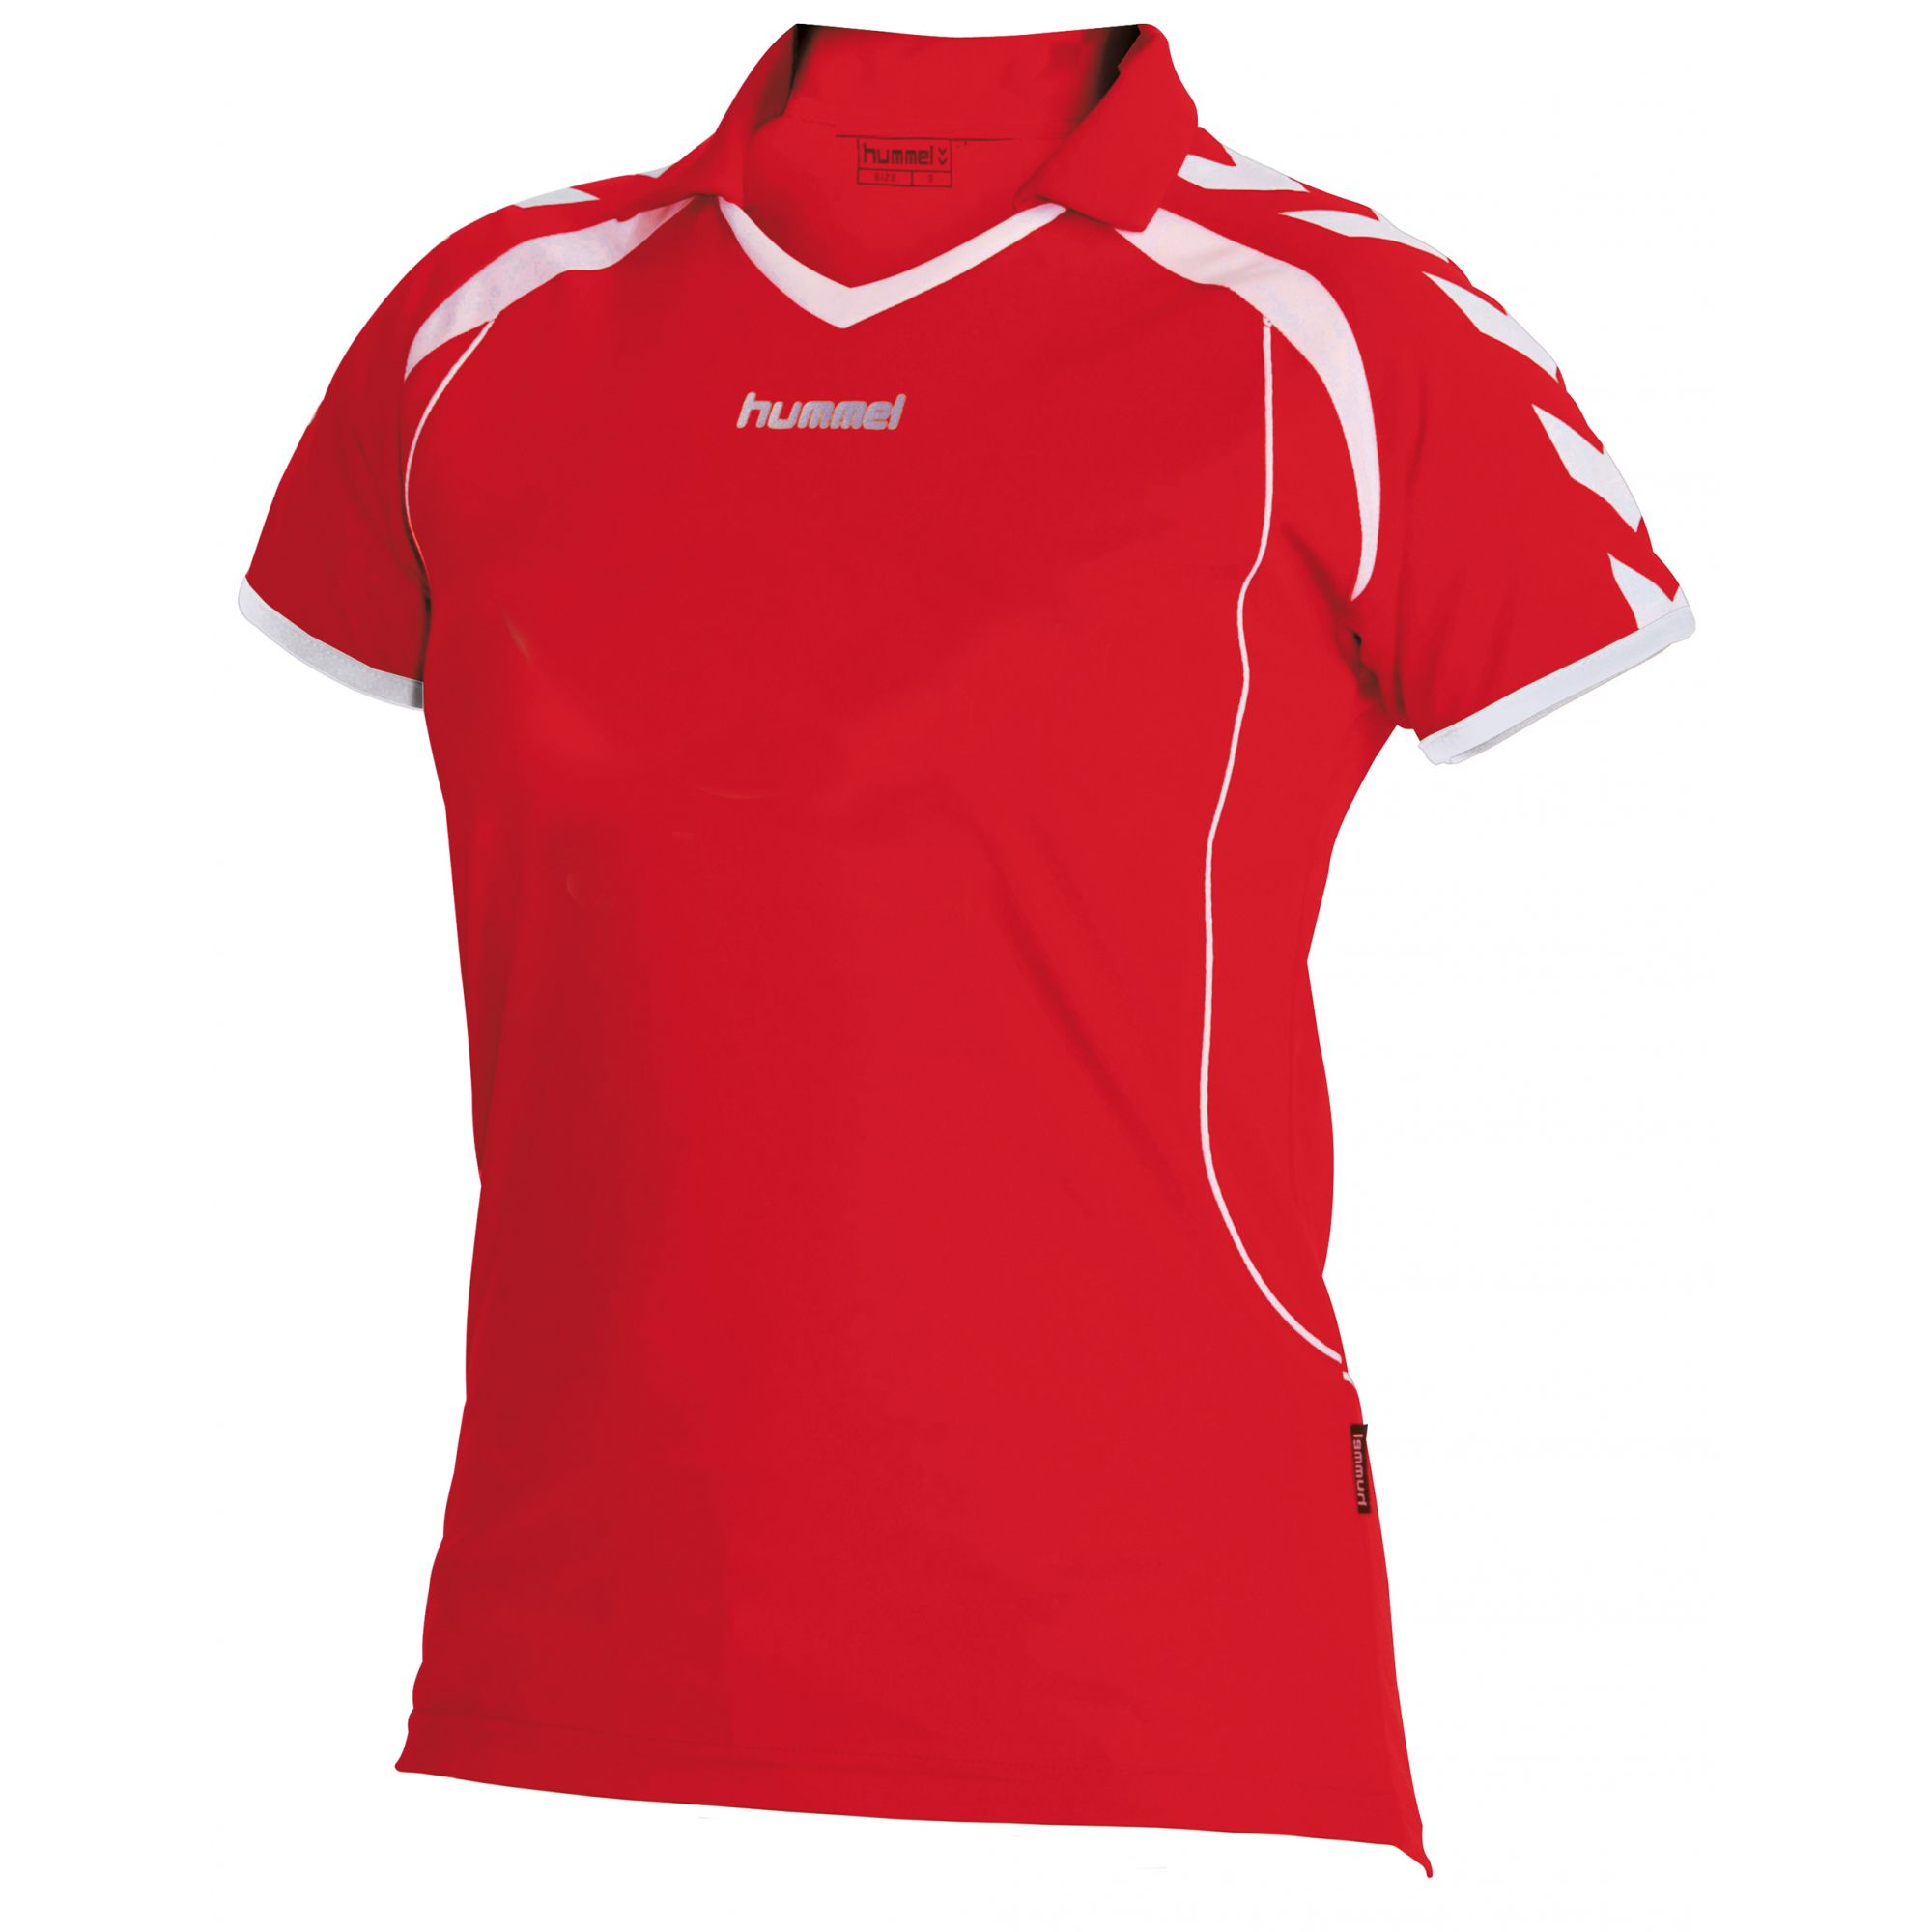 Hummel Brasil Shirt Ladies k.m. Rood - Wit